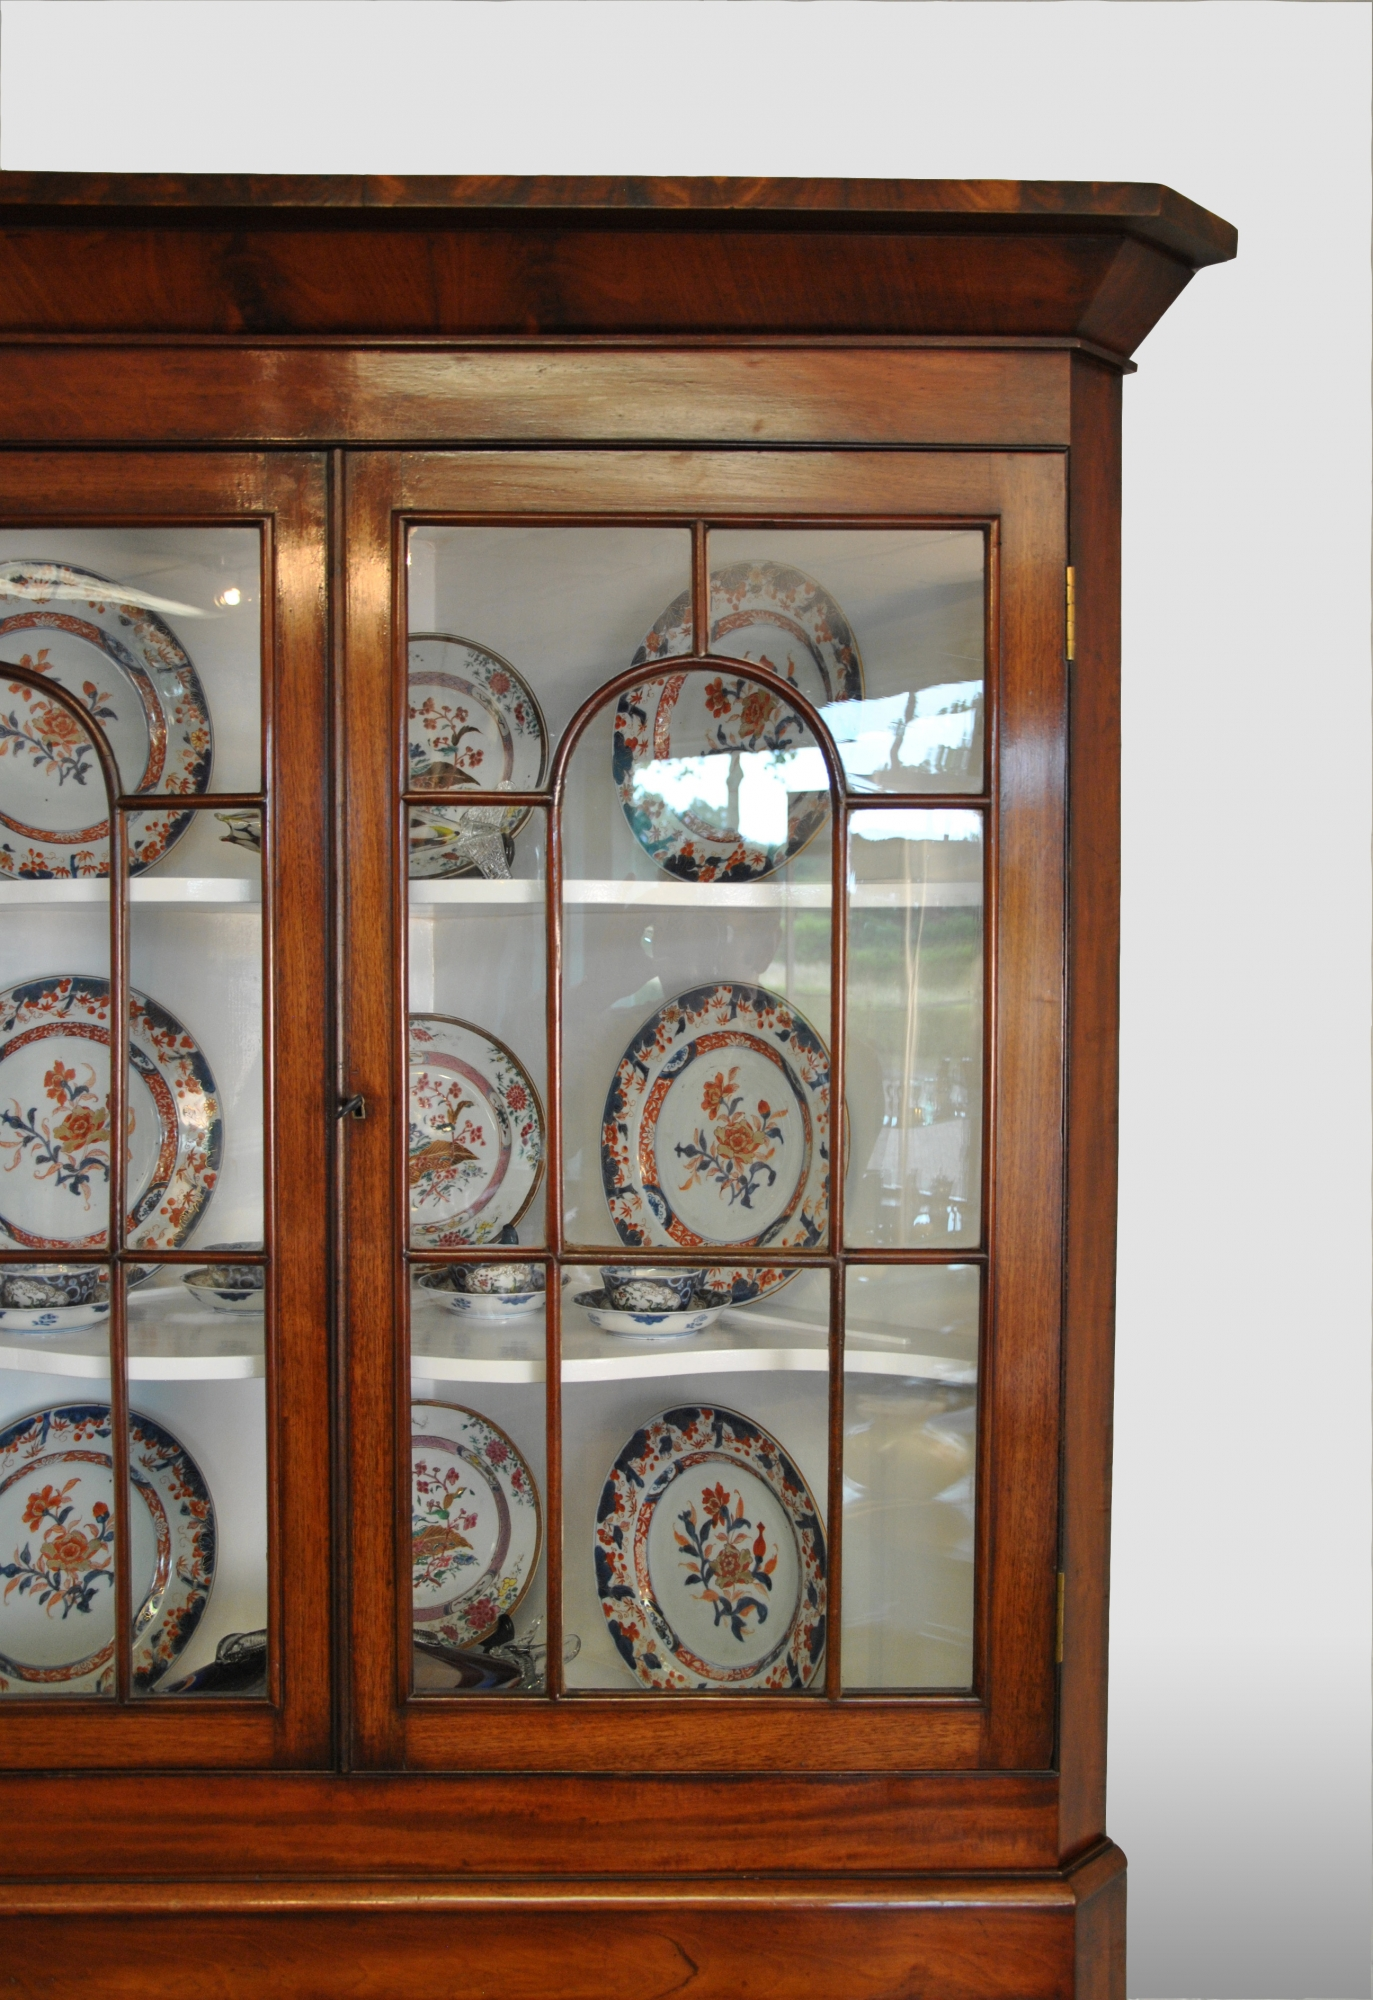 English corner display cabinet with the original glass in